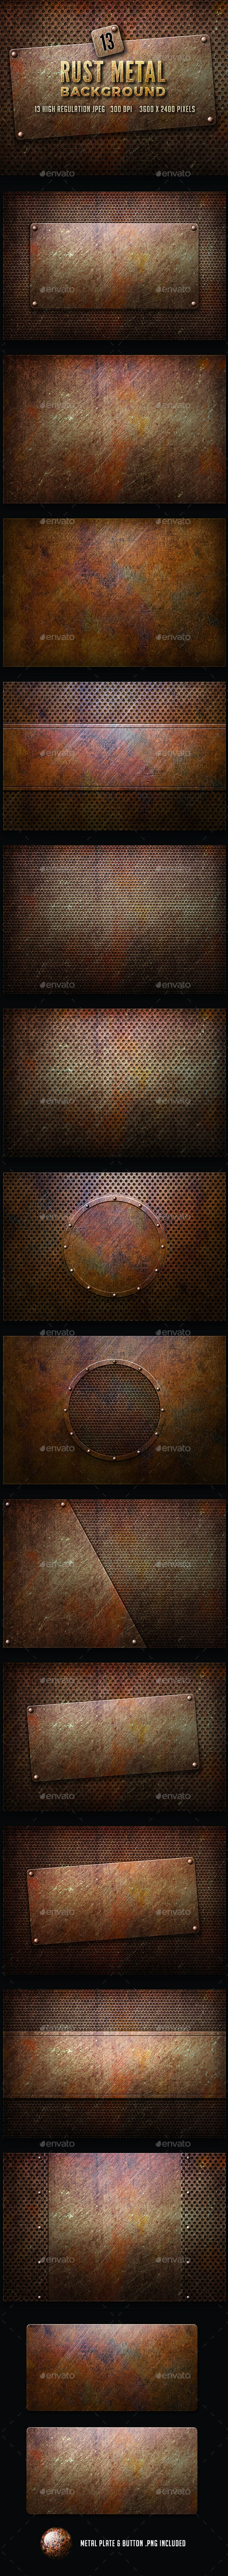 Rusty Metal Background - Backgrounds Graphics